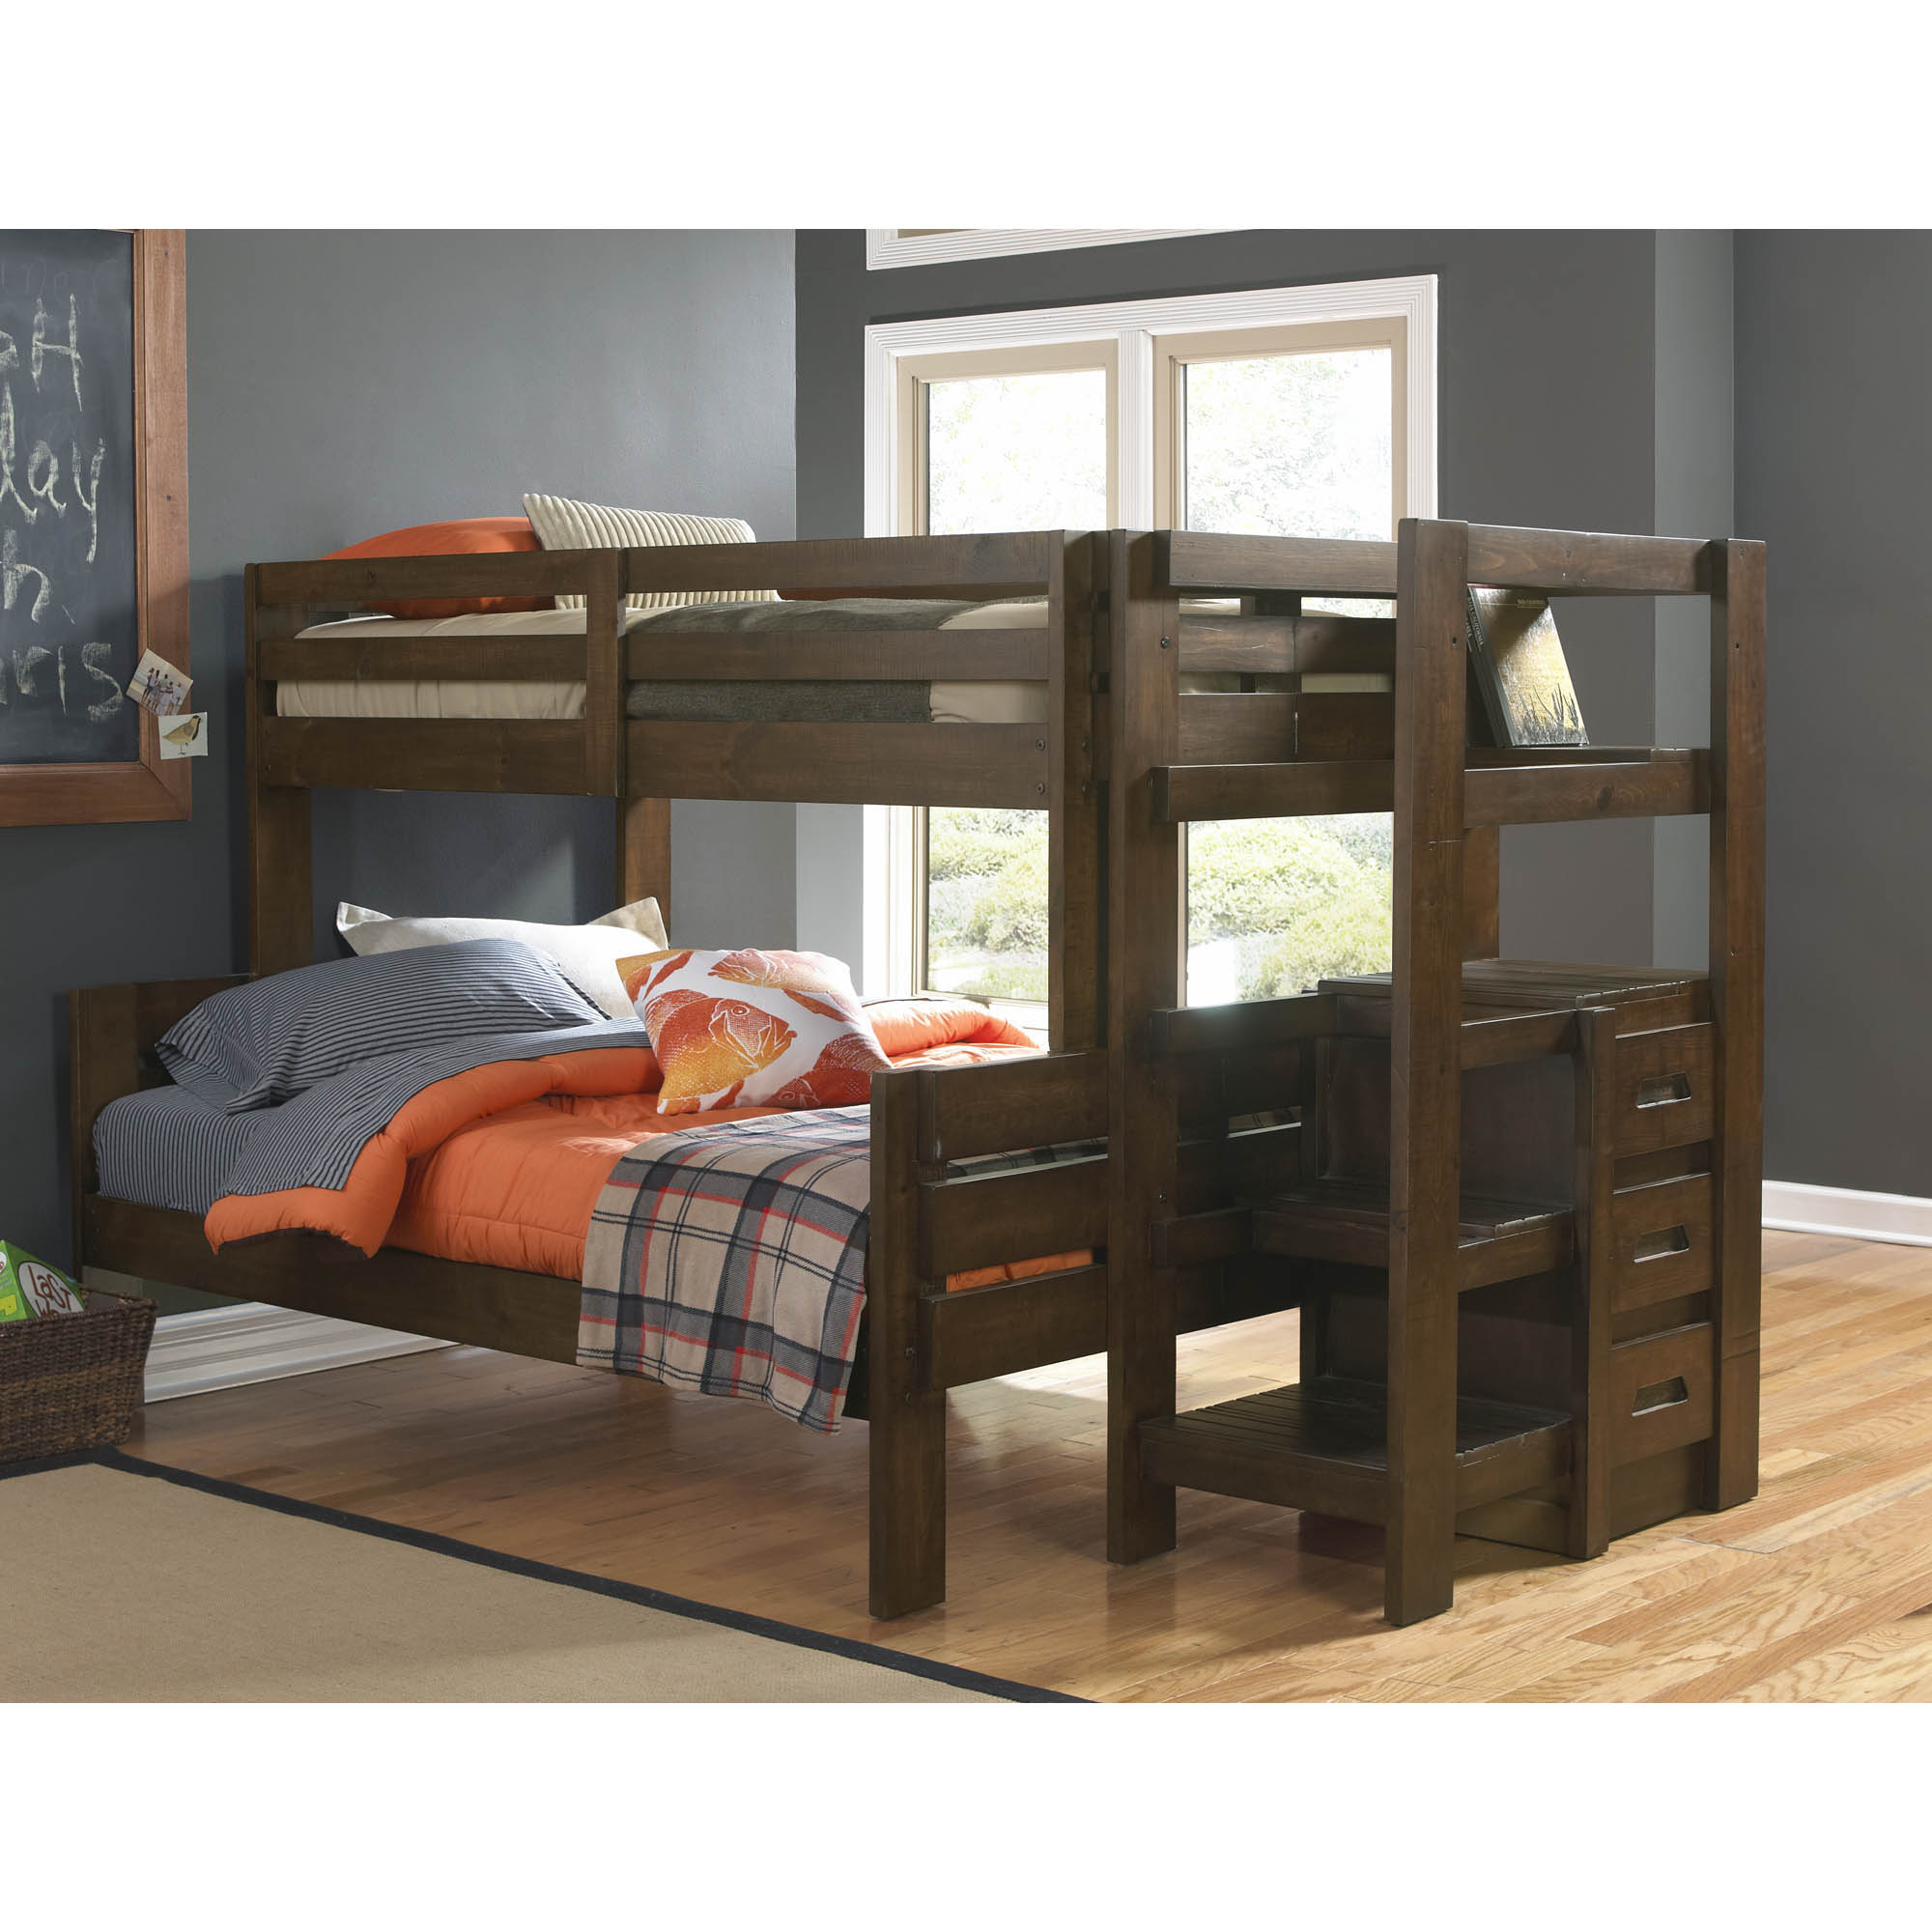 7 Piece Twin Full Storage Bunk